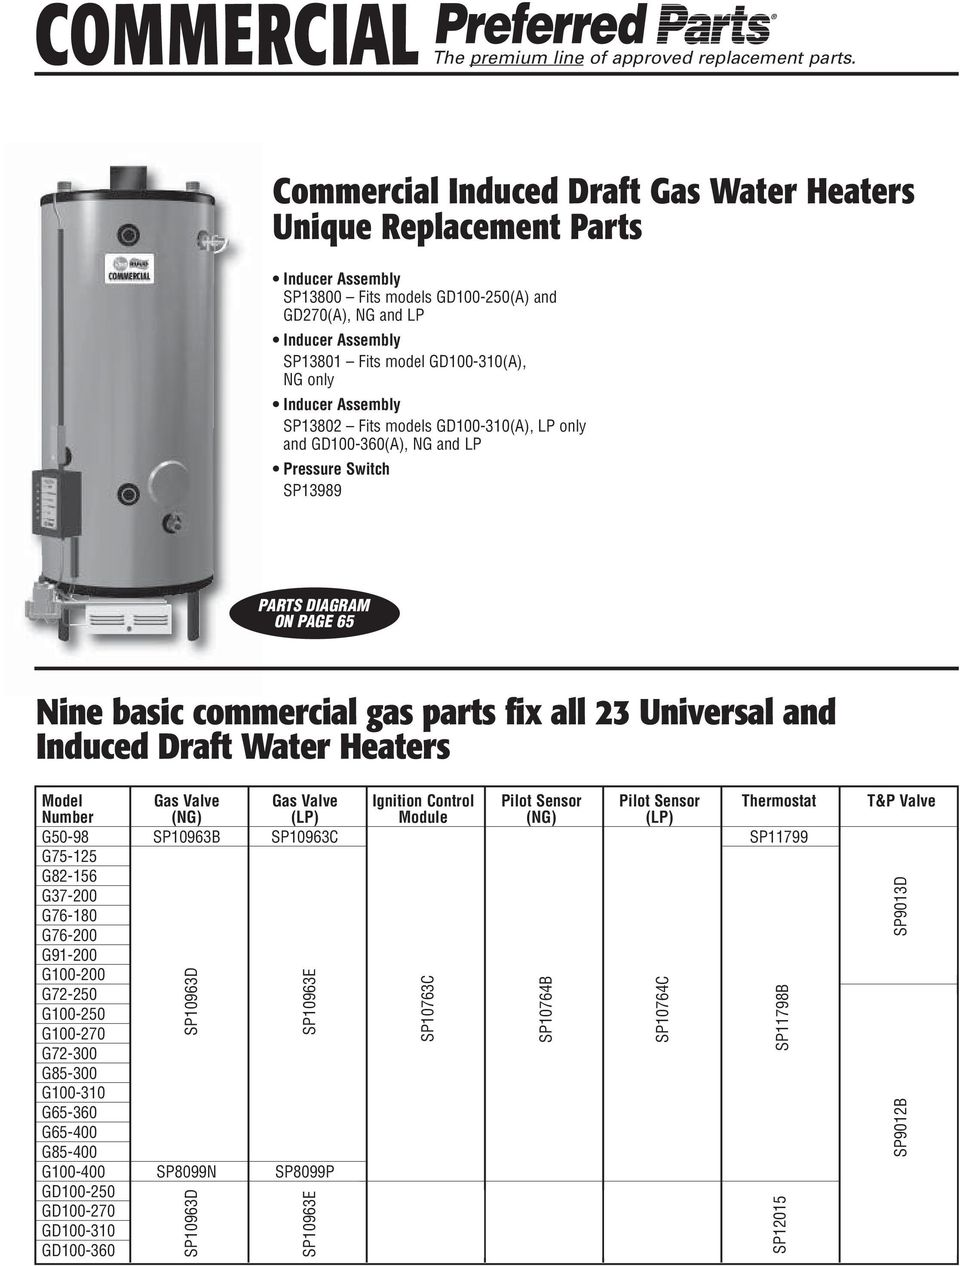 Wiring Diagram For Reliance Water Heater : Reliance water heater parts diagram images